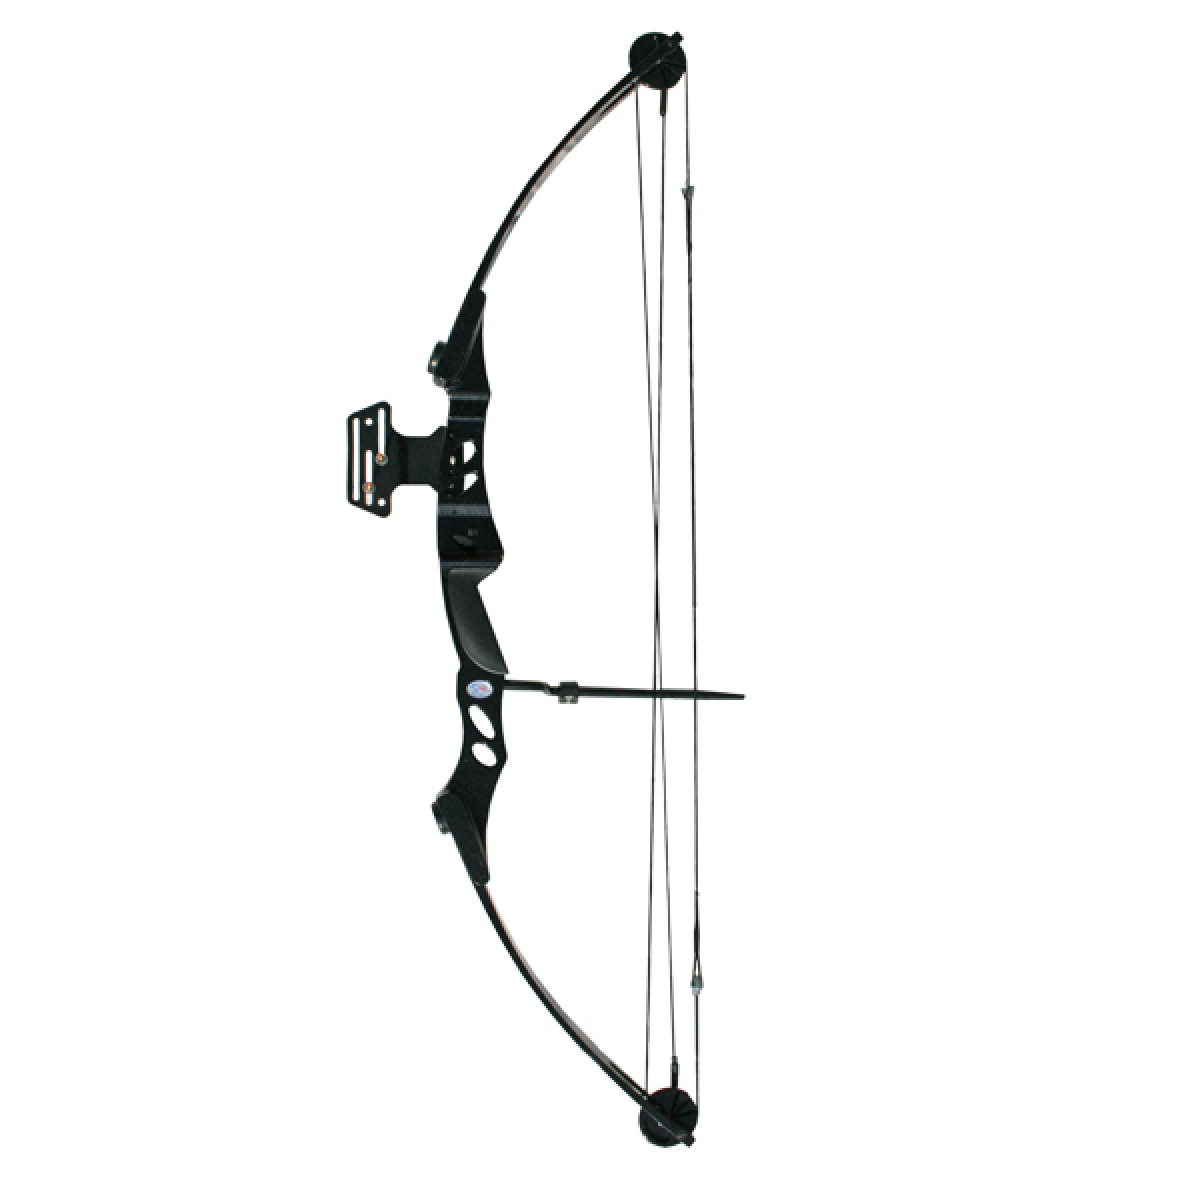 Archery 55lb Black Compound Bow - Archery Bow And Arrow PNG